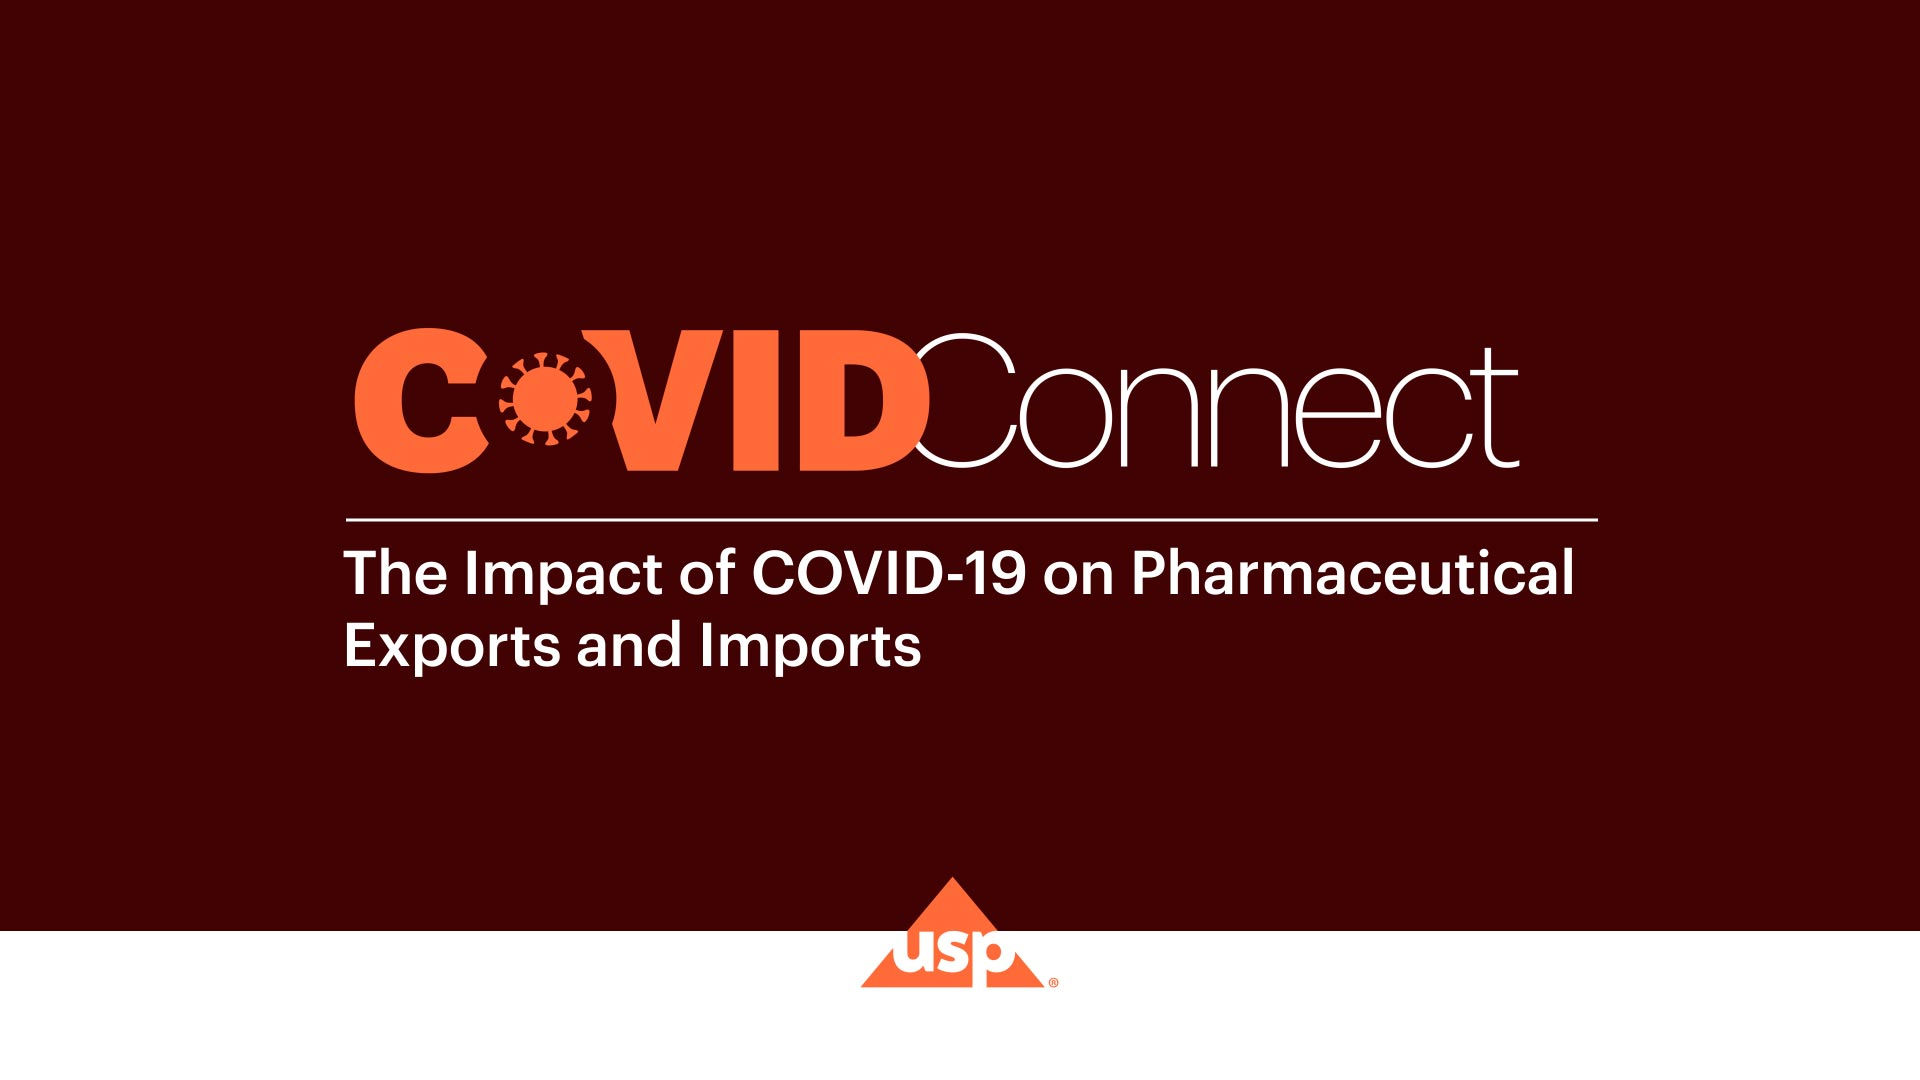 USP COVID CONNECT with Mr. Uday Bhaskar, DG- Pharmexcil | Impact of COVID-19 on Pharmaceutical Exports and Imports